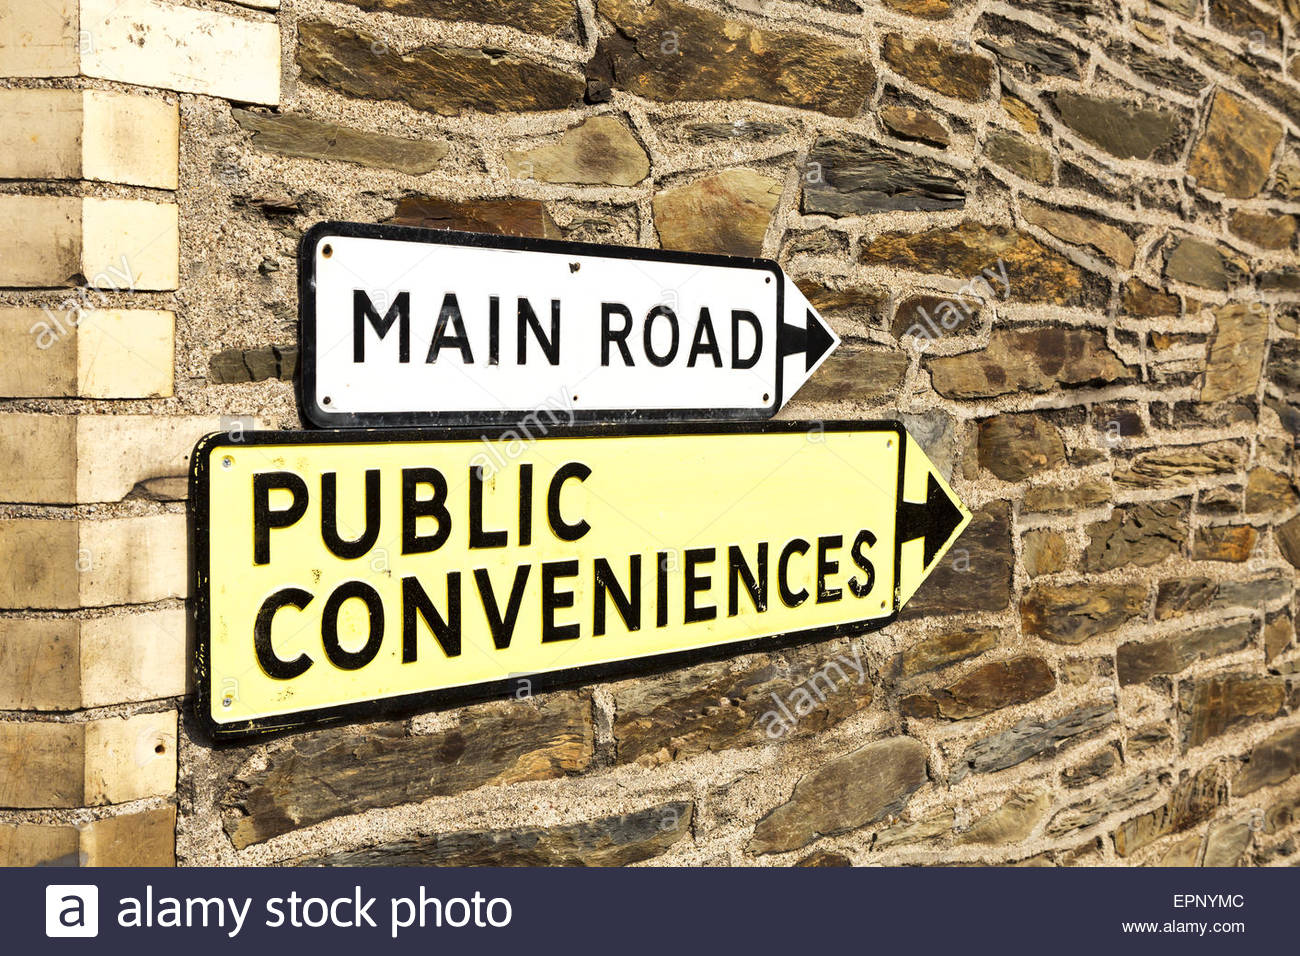 Stone Road Signs Stock Photos & Stone Road Signs Stock Images - Alamy